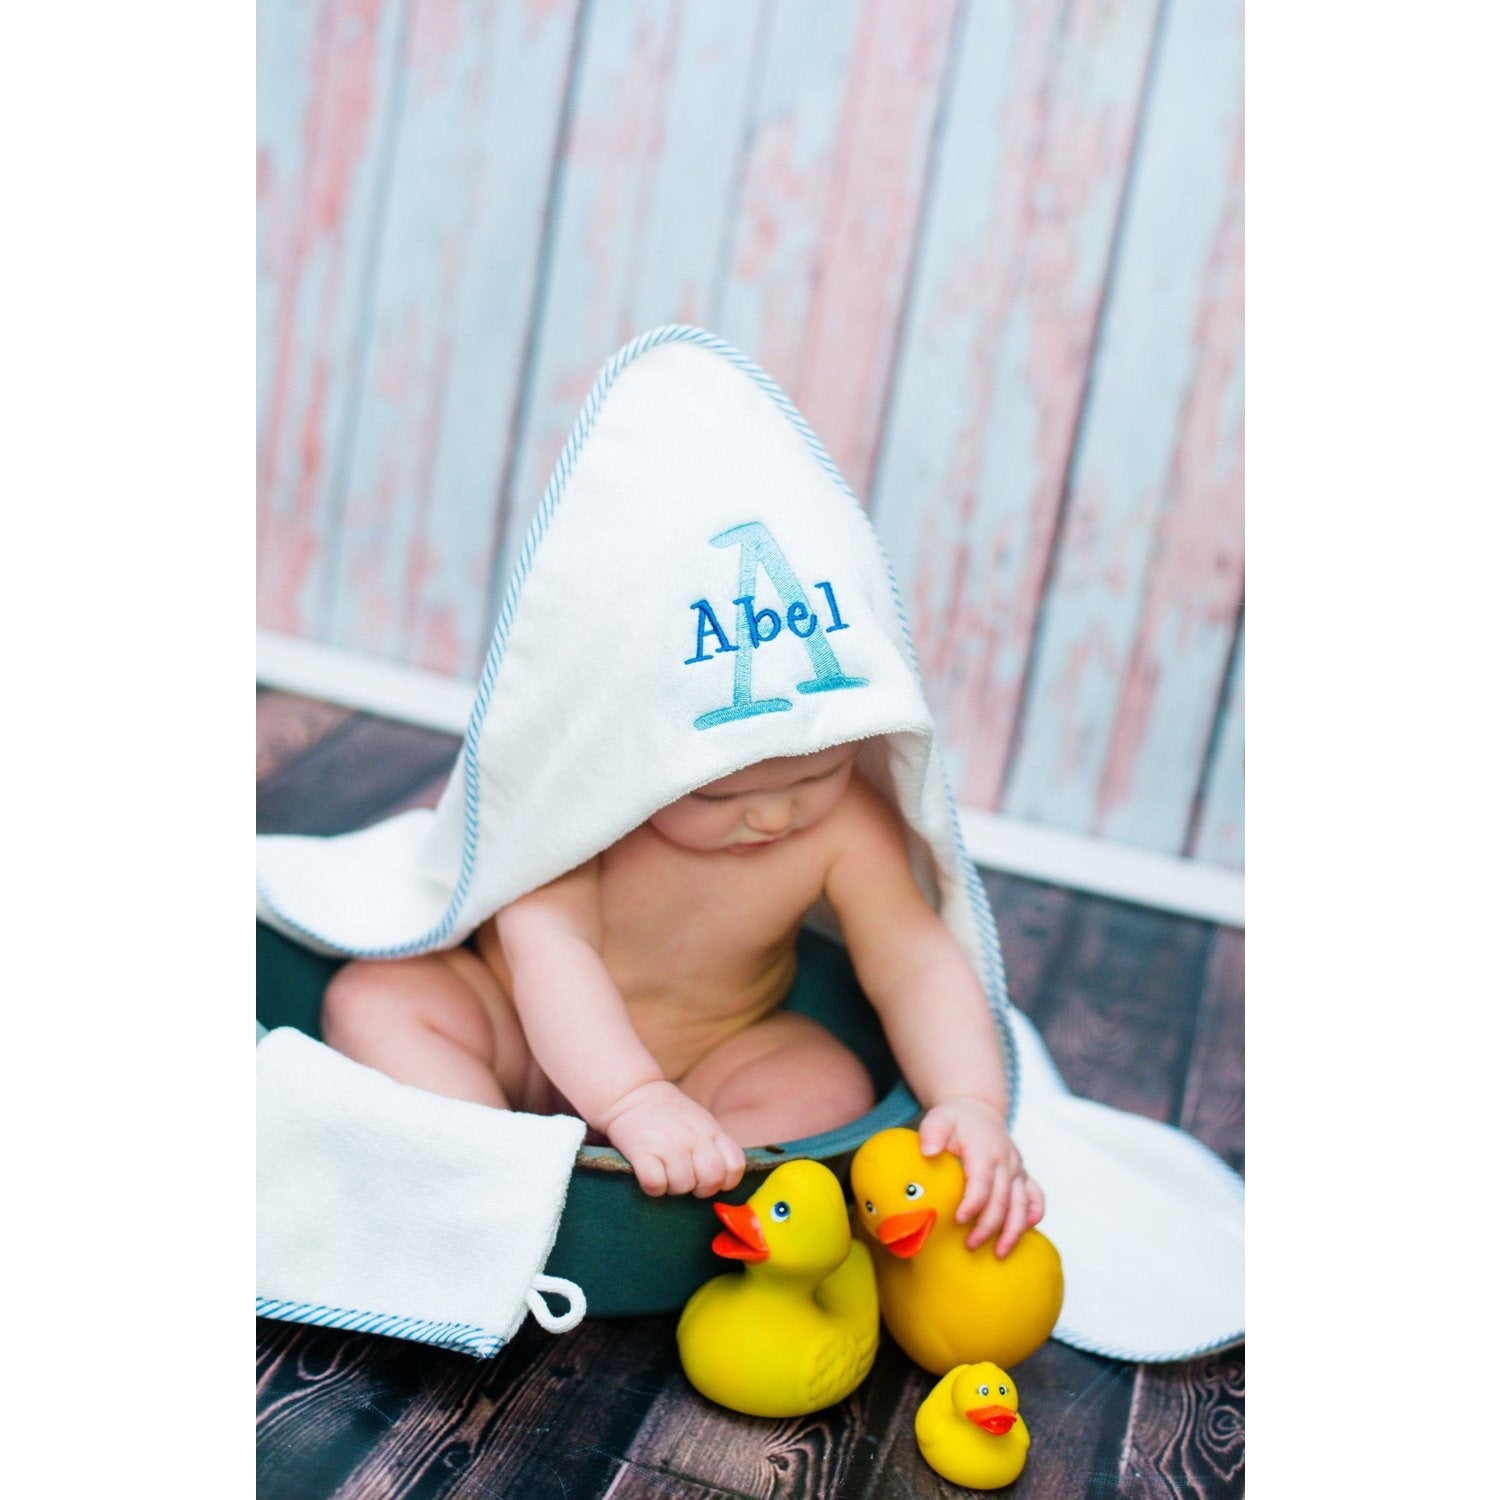 Personalized Infant Hooded Towel and Mitt Set, Monogrammed towel, newborn gift, Baby Towel, - Jennifer Noel Designs